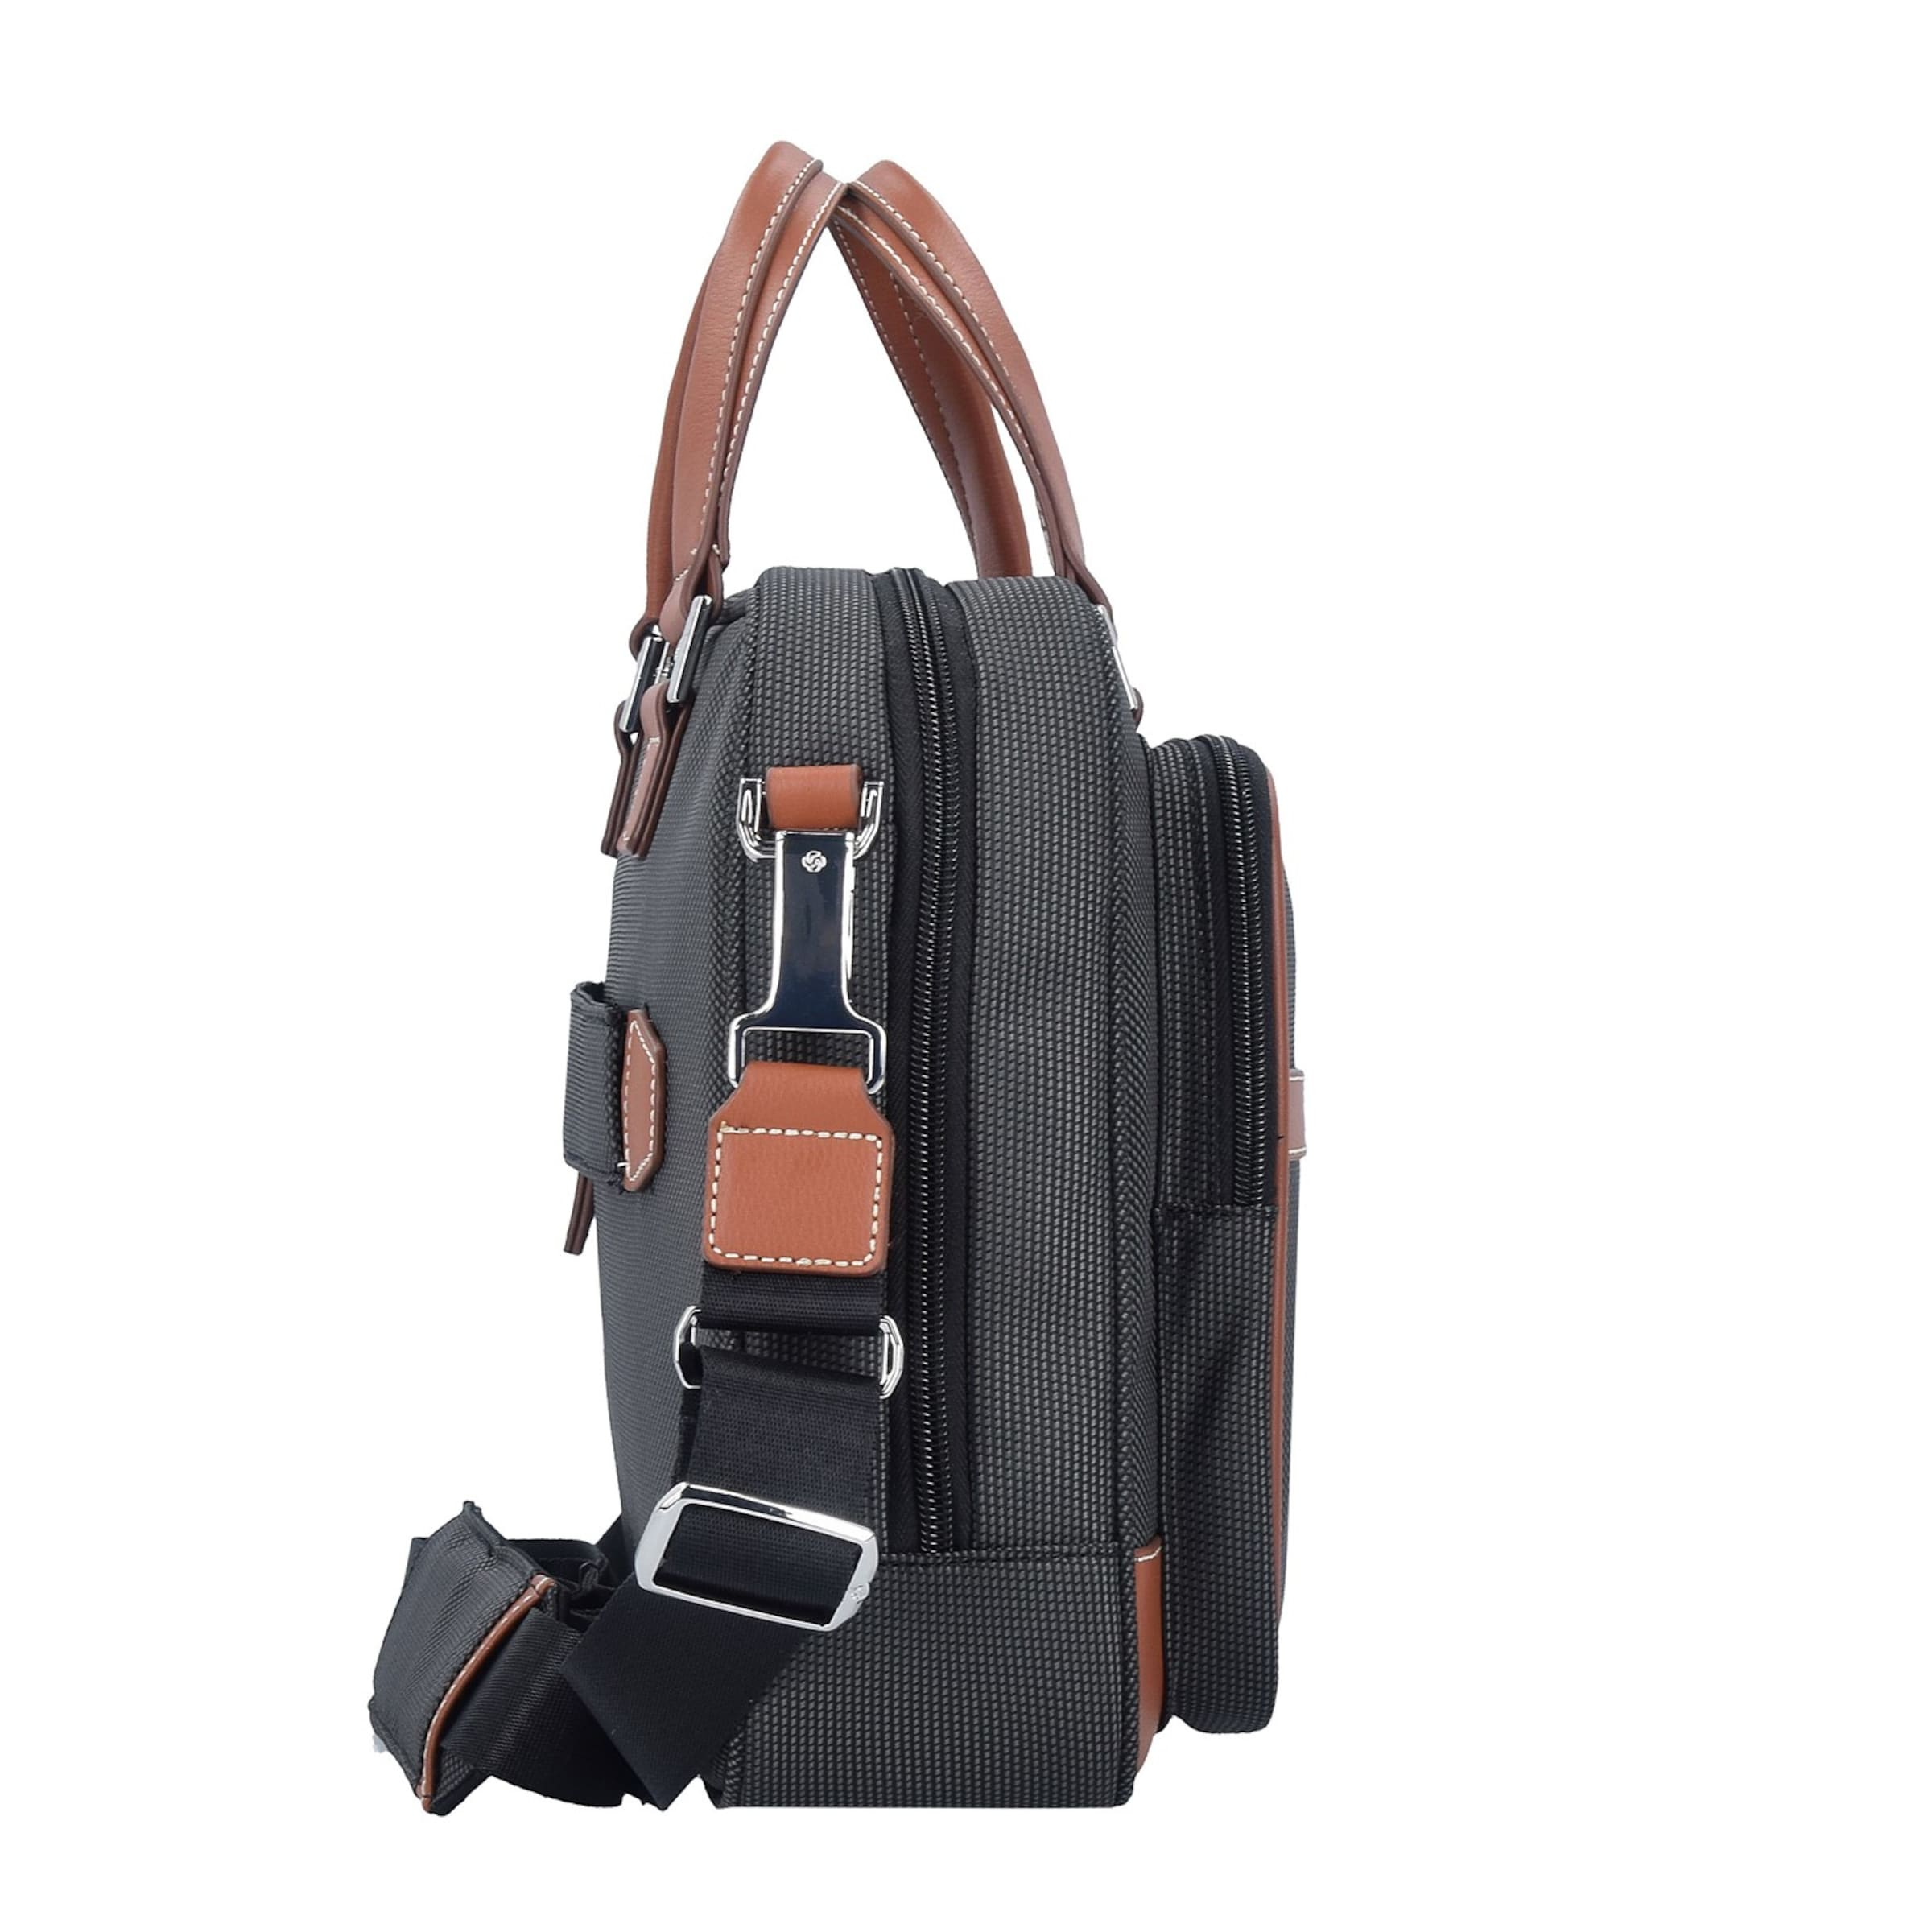 SAMSONITE Aktentasche 1 SAMSONITE Fairbrook Aktentasche 14 Laptopfach 14 39 1 cm Fairbrook fwFOxd